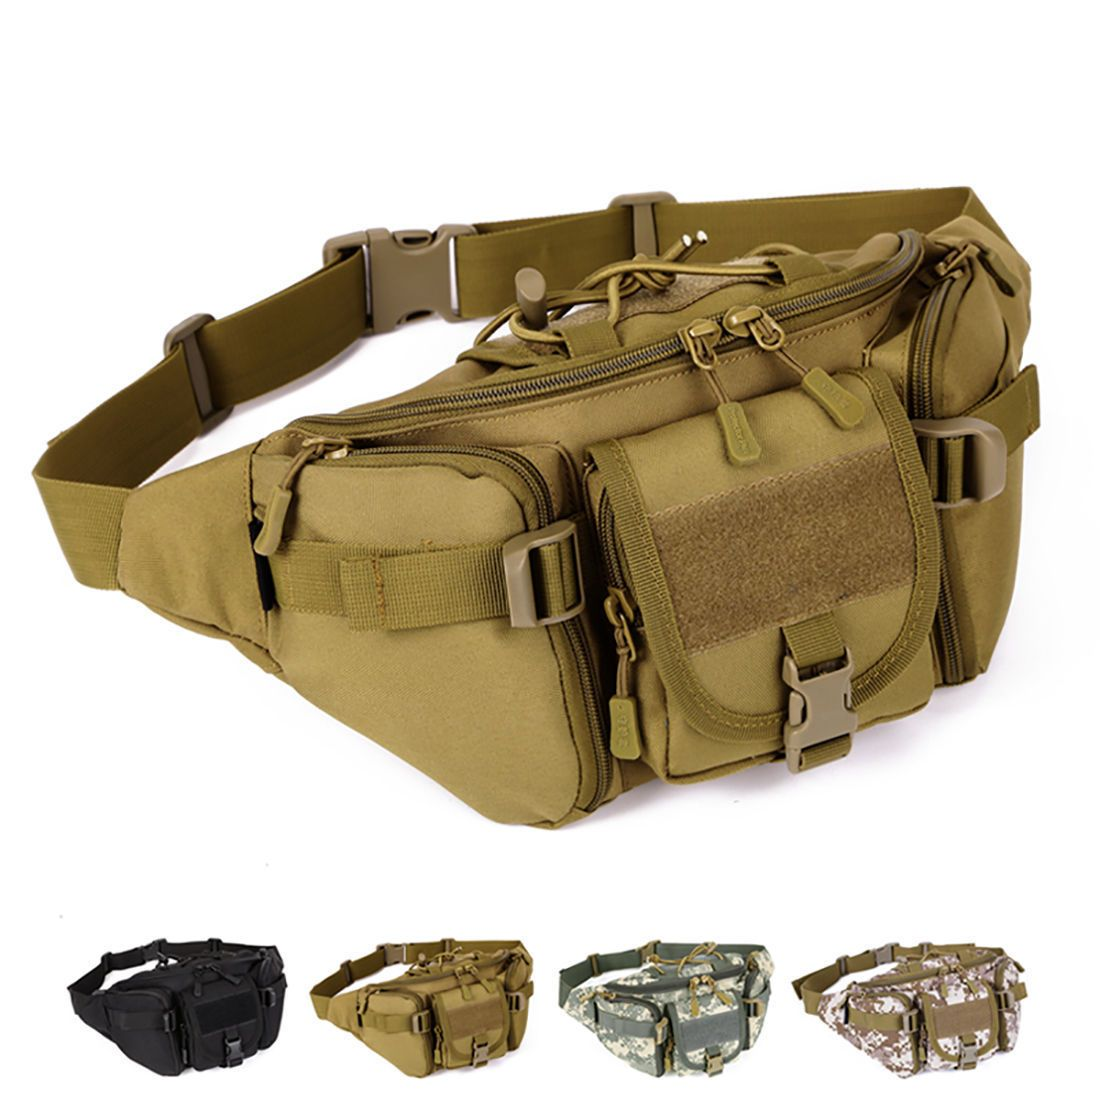 Fine Jewelry 2019 Latest Design New Men Waterproof Nylon Travel Military Travel Messenger Shoulder Sling Chest Hip Bum Belt Fanny Pack Waist Bag Purse